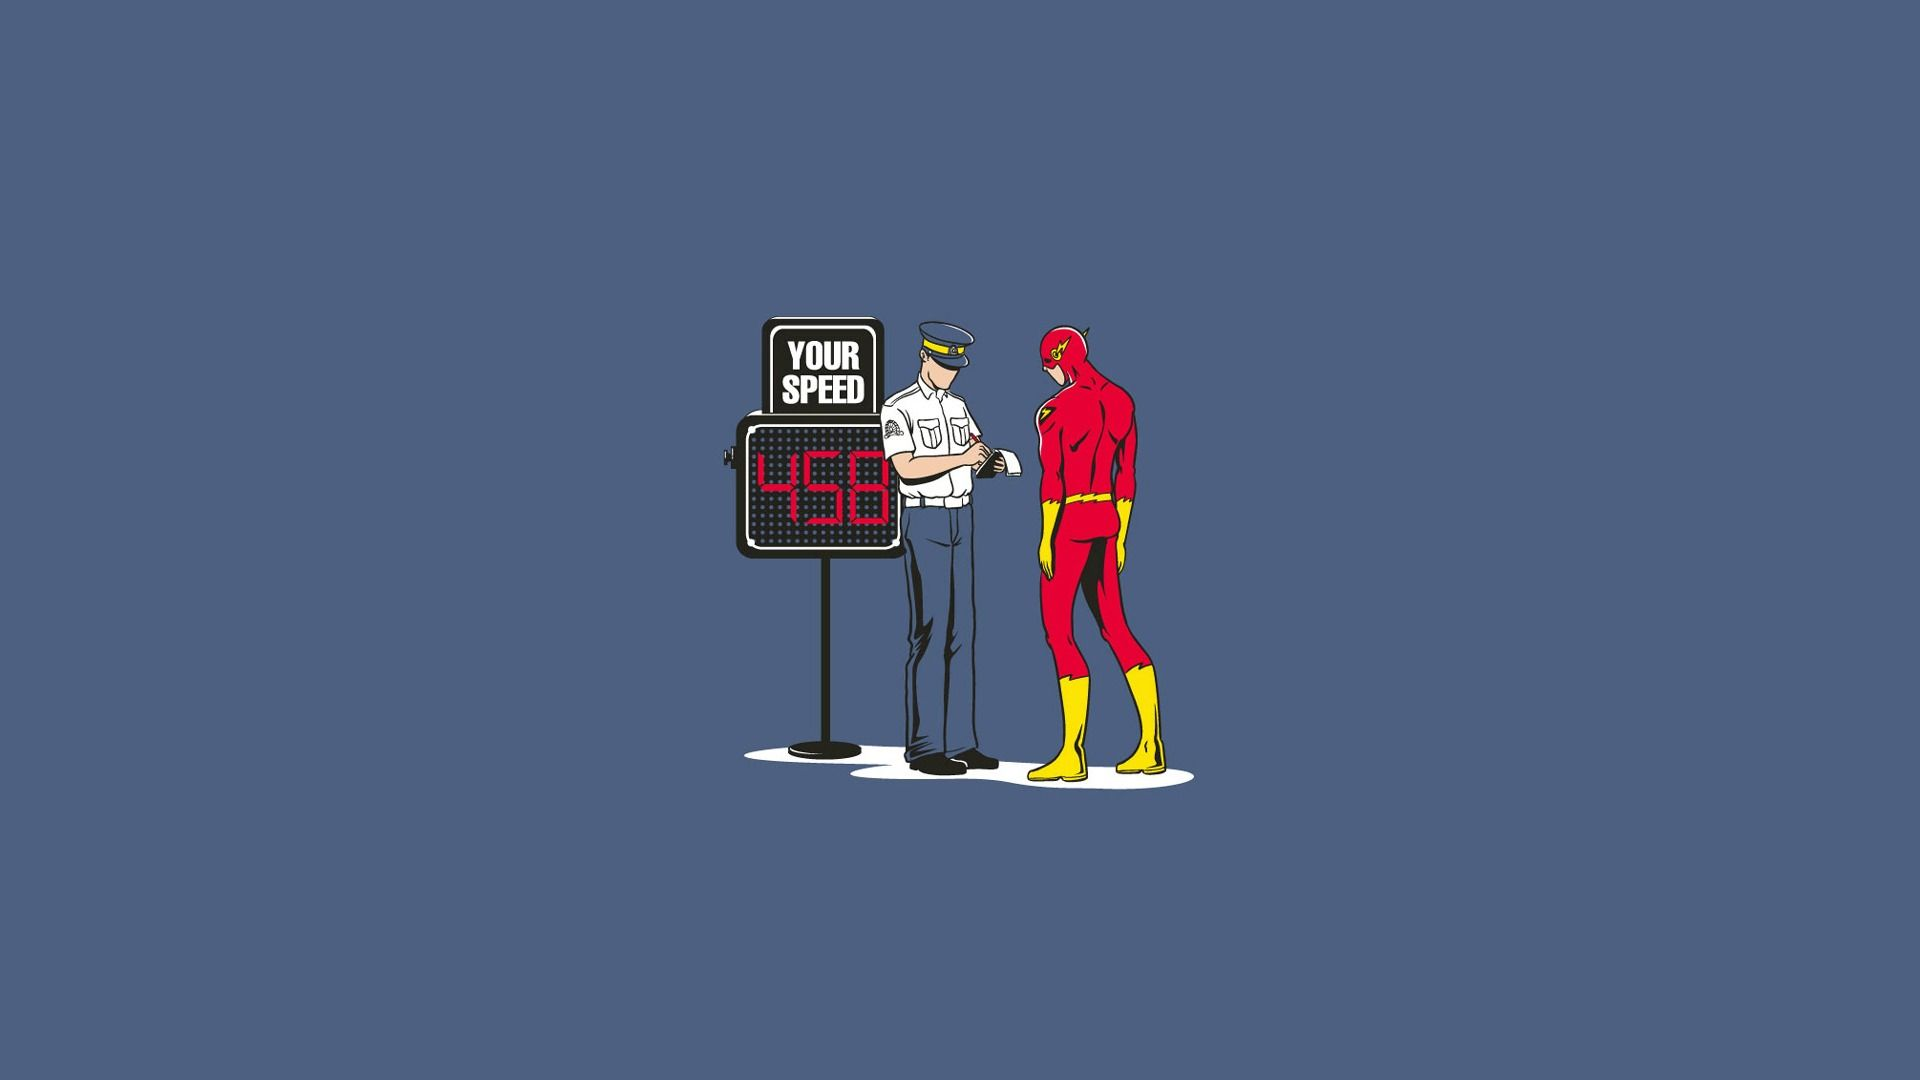 Wallpaper Dc Comics Humor Character Comic The Flash Police Officer Super Hero The Speed Penalty Dc Comics Wallpaper Flash Wallpaper Wallpaper Pc